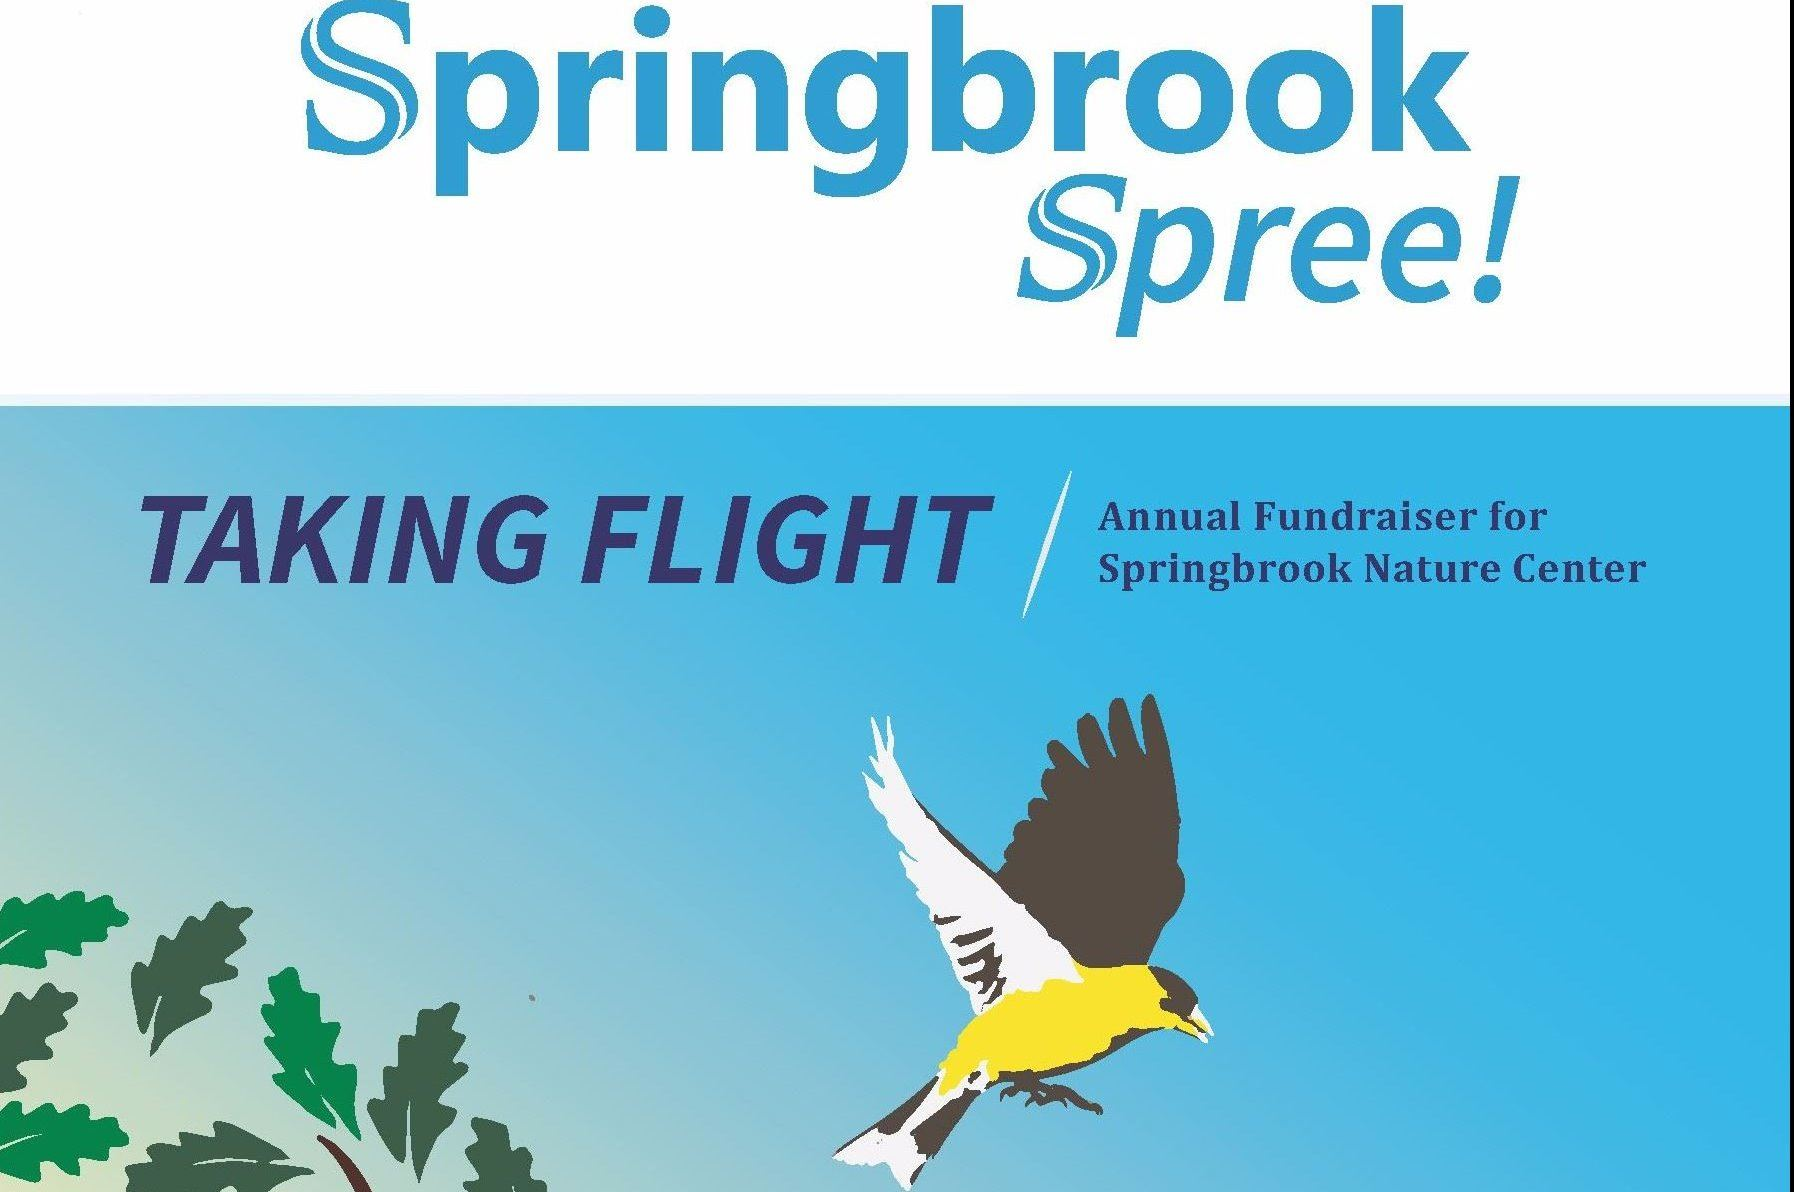 Springbrook Spree flyer